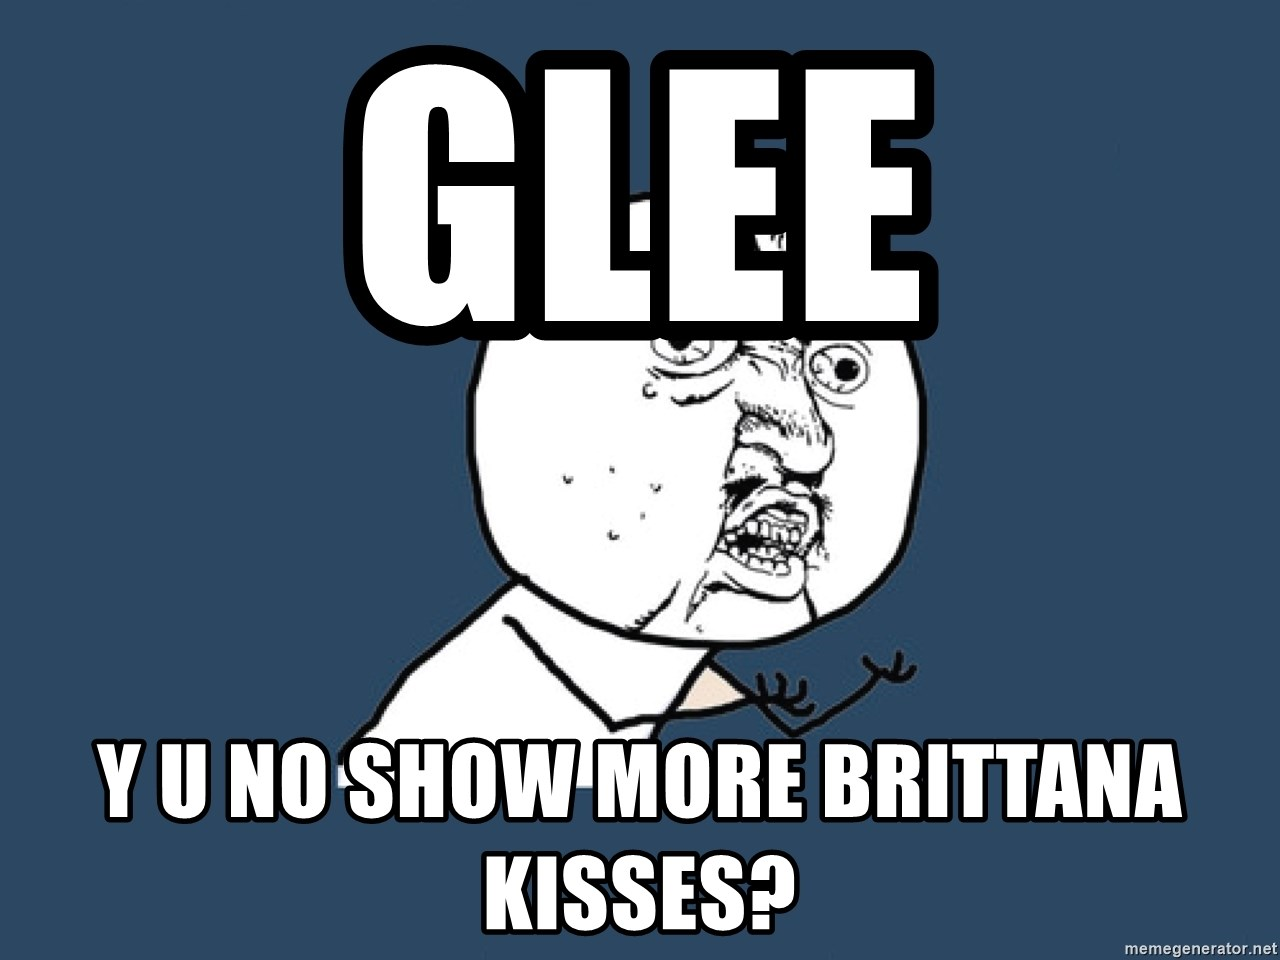 Y U No - glee y u no show more brittana kisses?